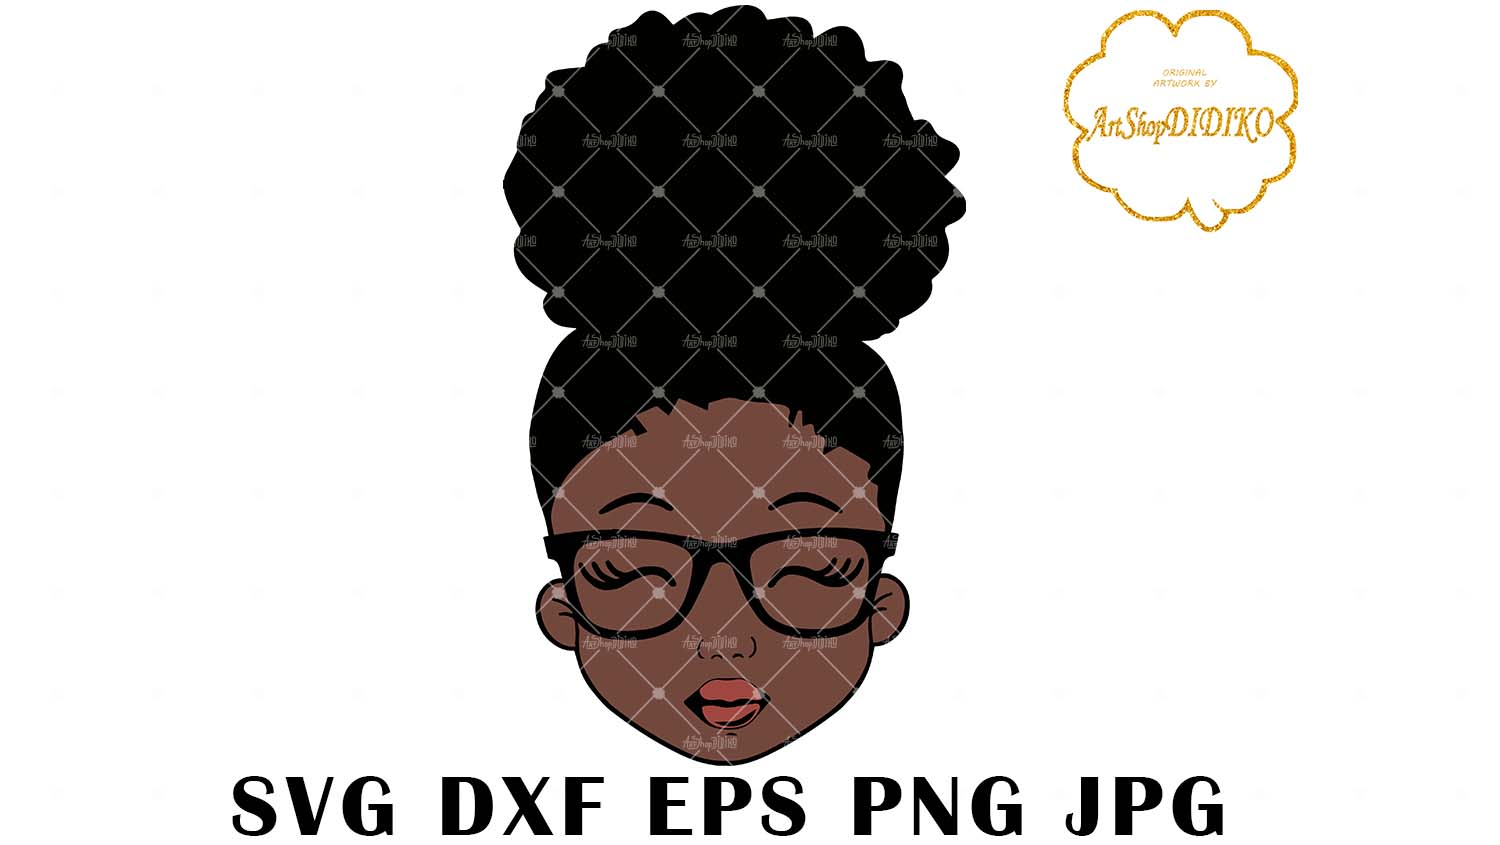 Download Cute Afro Girl With Glasses SVG, Afro Puff Girl SVG, Afro ...